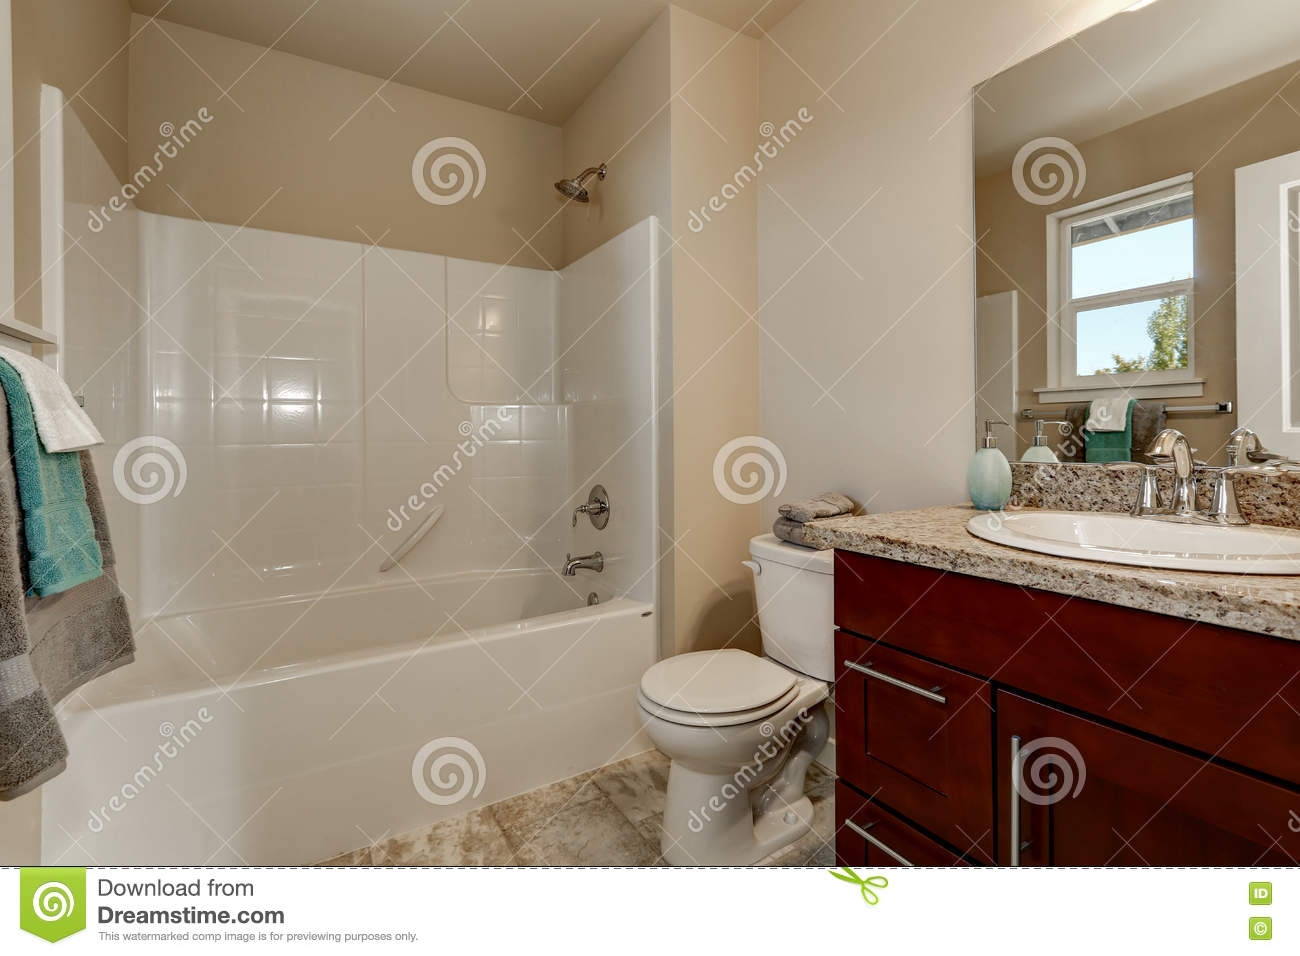 American Style Bathroom With Vanity Cabinet Toilet And Shower Stock Image Image Of Shower